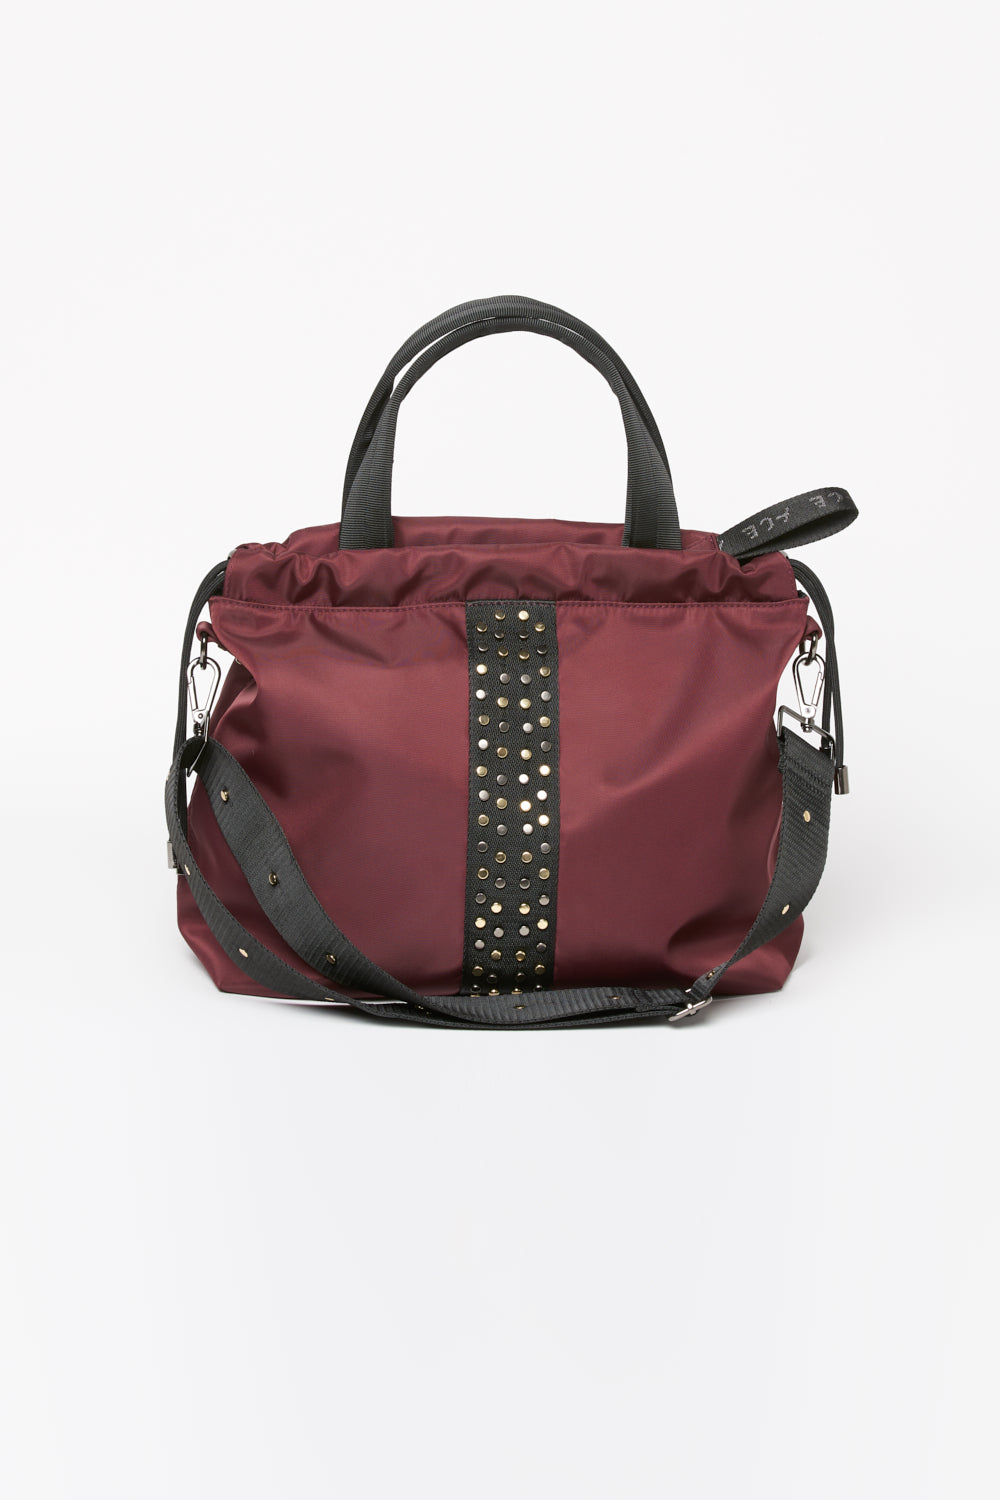 ACE Urban Tote Bag Burgundy